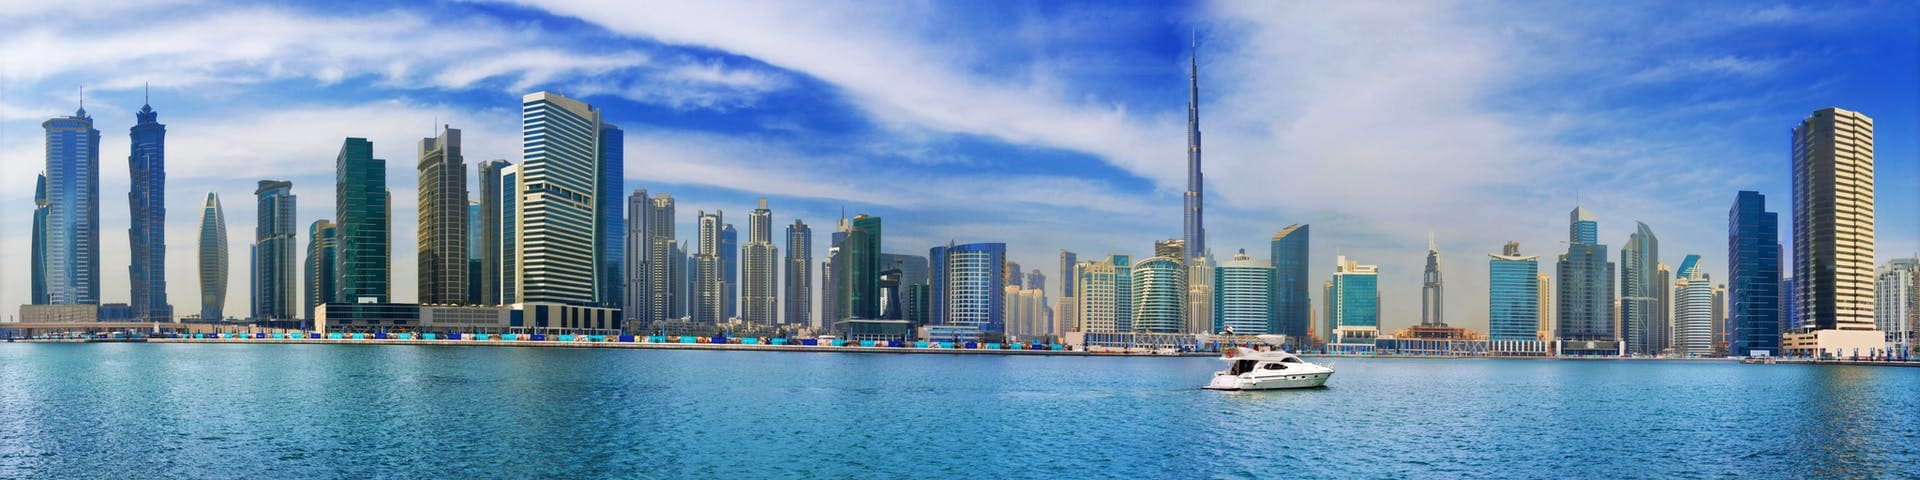 Panorama view of the canal in downtown Dubai